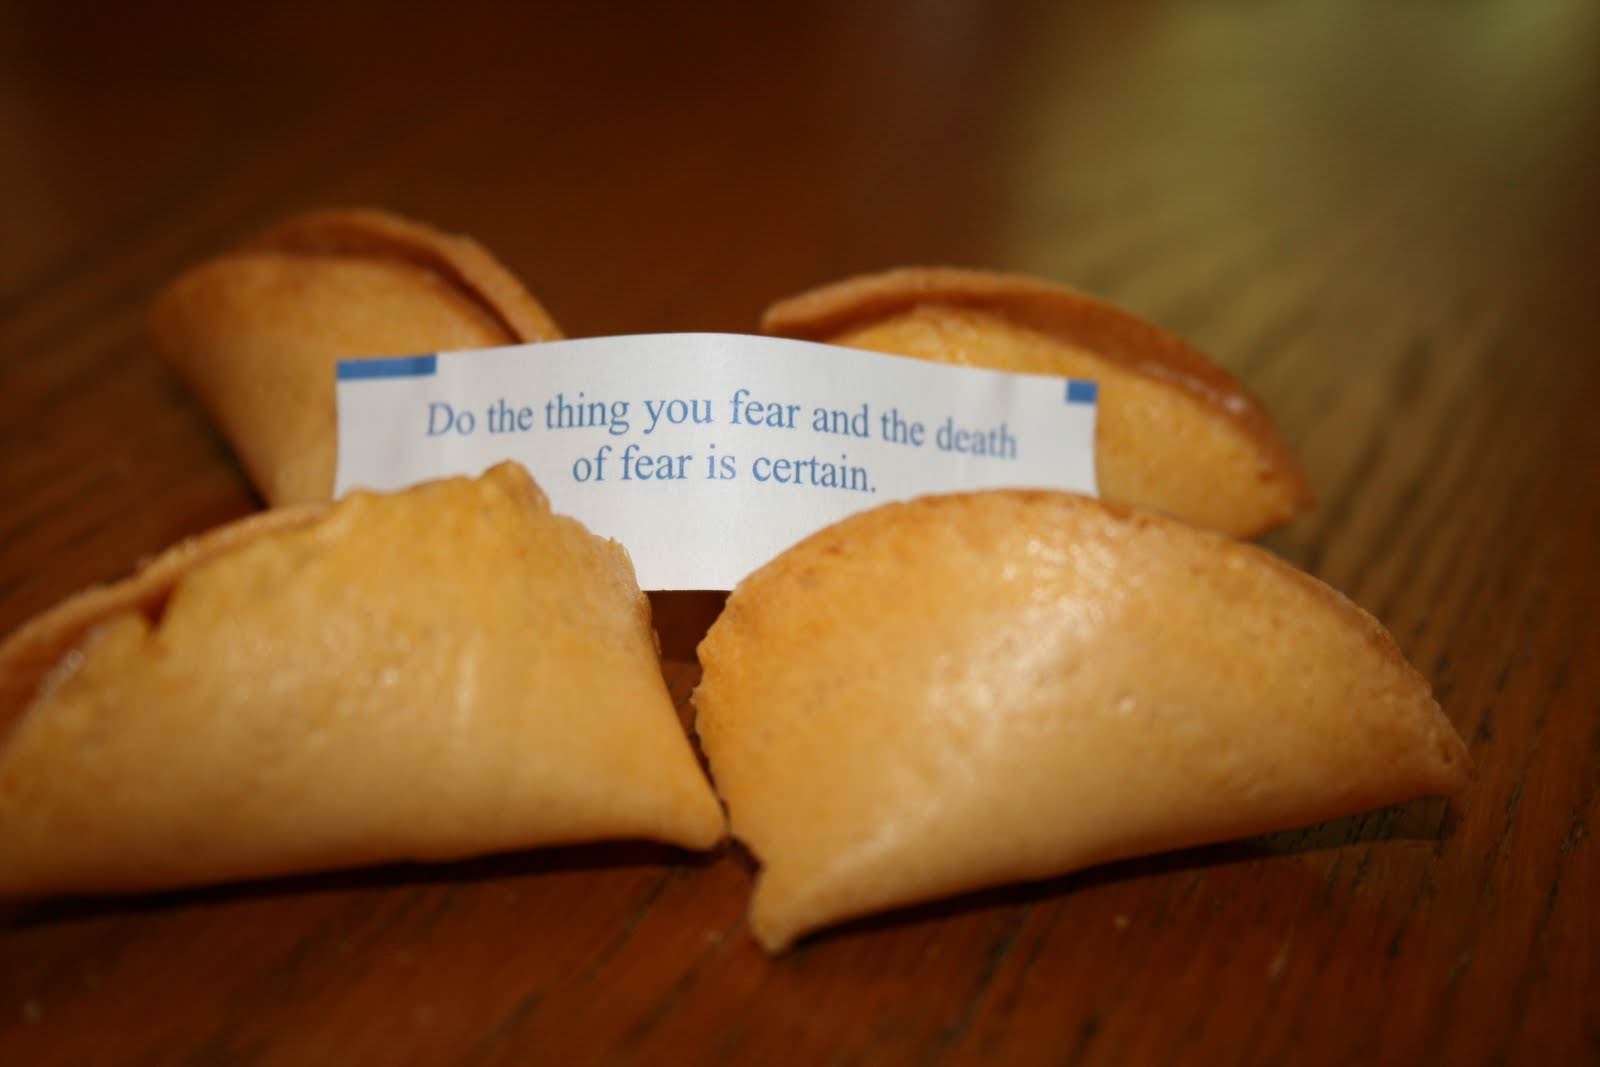 Nice Wallpapers With Inspiring Quotes 20 Inspirational Fortune Cookie Quotes On Life For